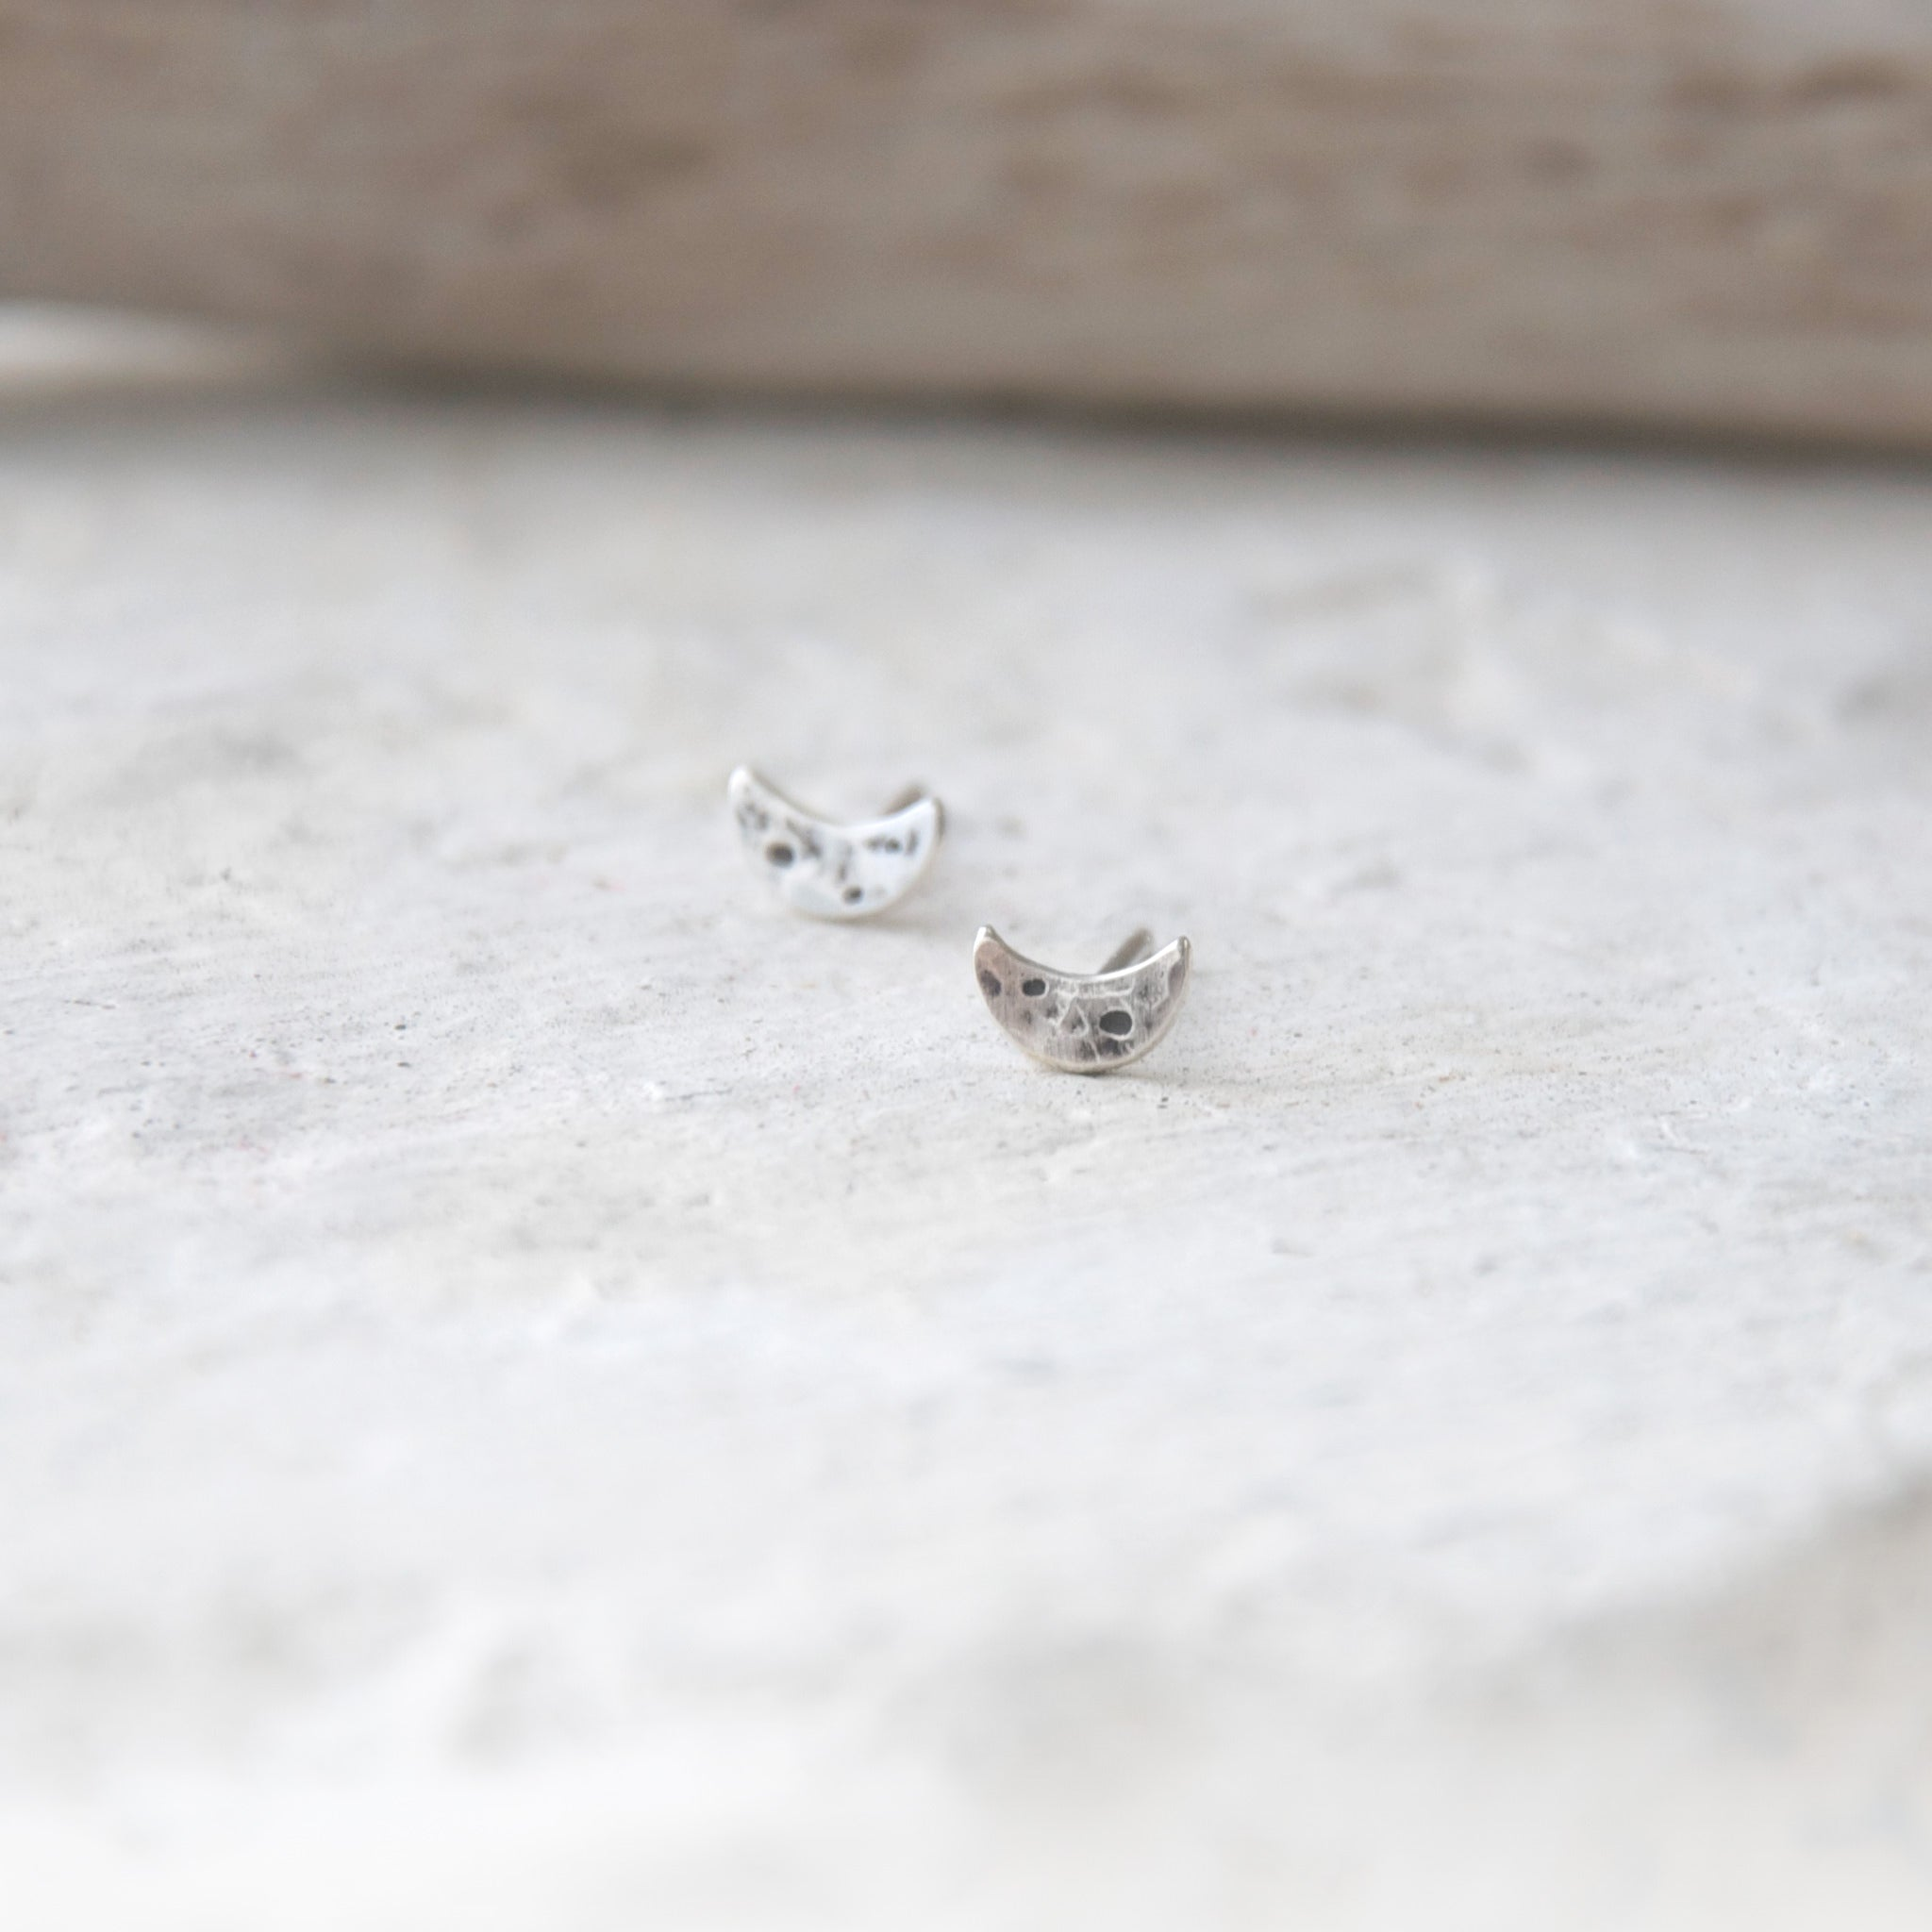 Lunar-Love-Crescent-Moon-Studs-Sterling-Silver-Hammered-Moon-Crater-Texture